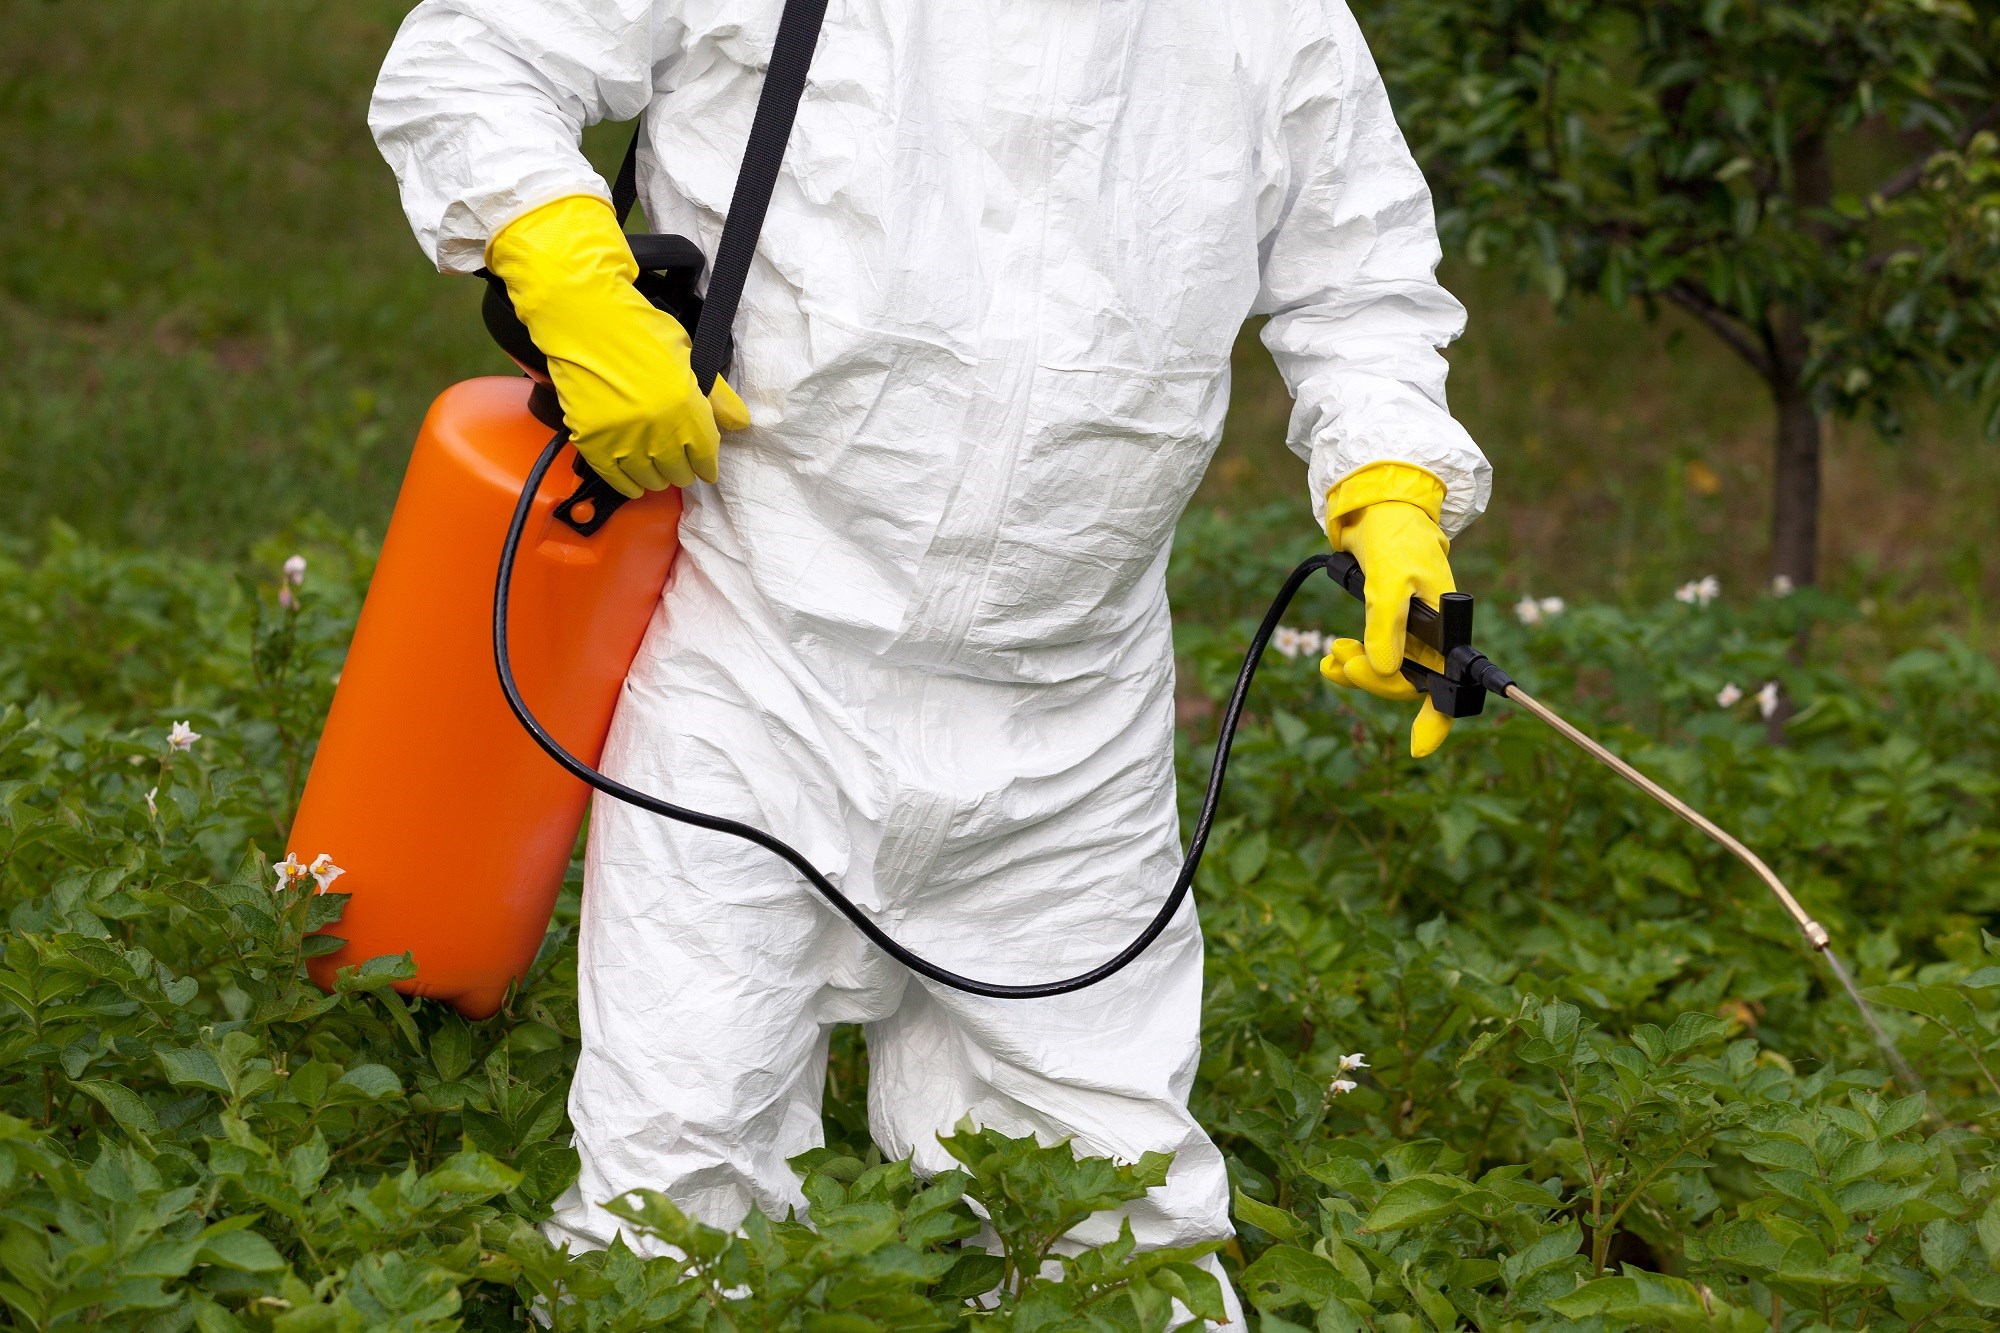 Occupational Metal, Pesticide Exposure May Be Associated With Increased CVD Risk